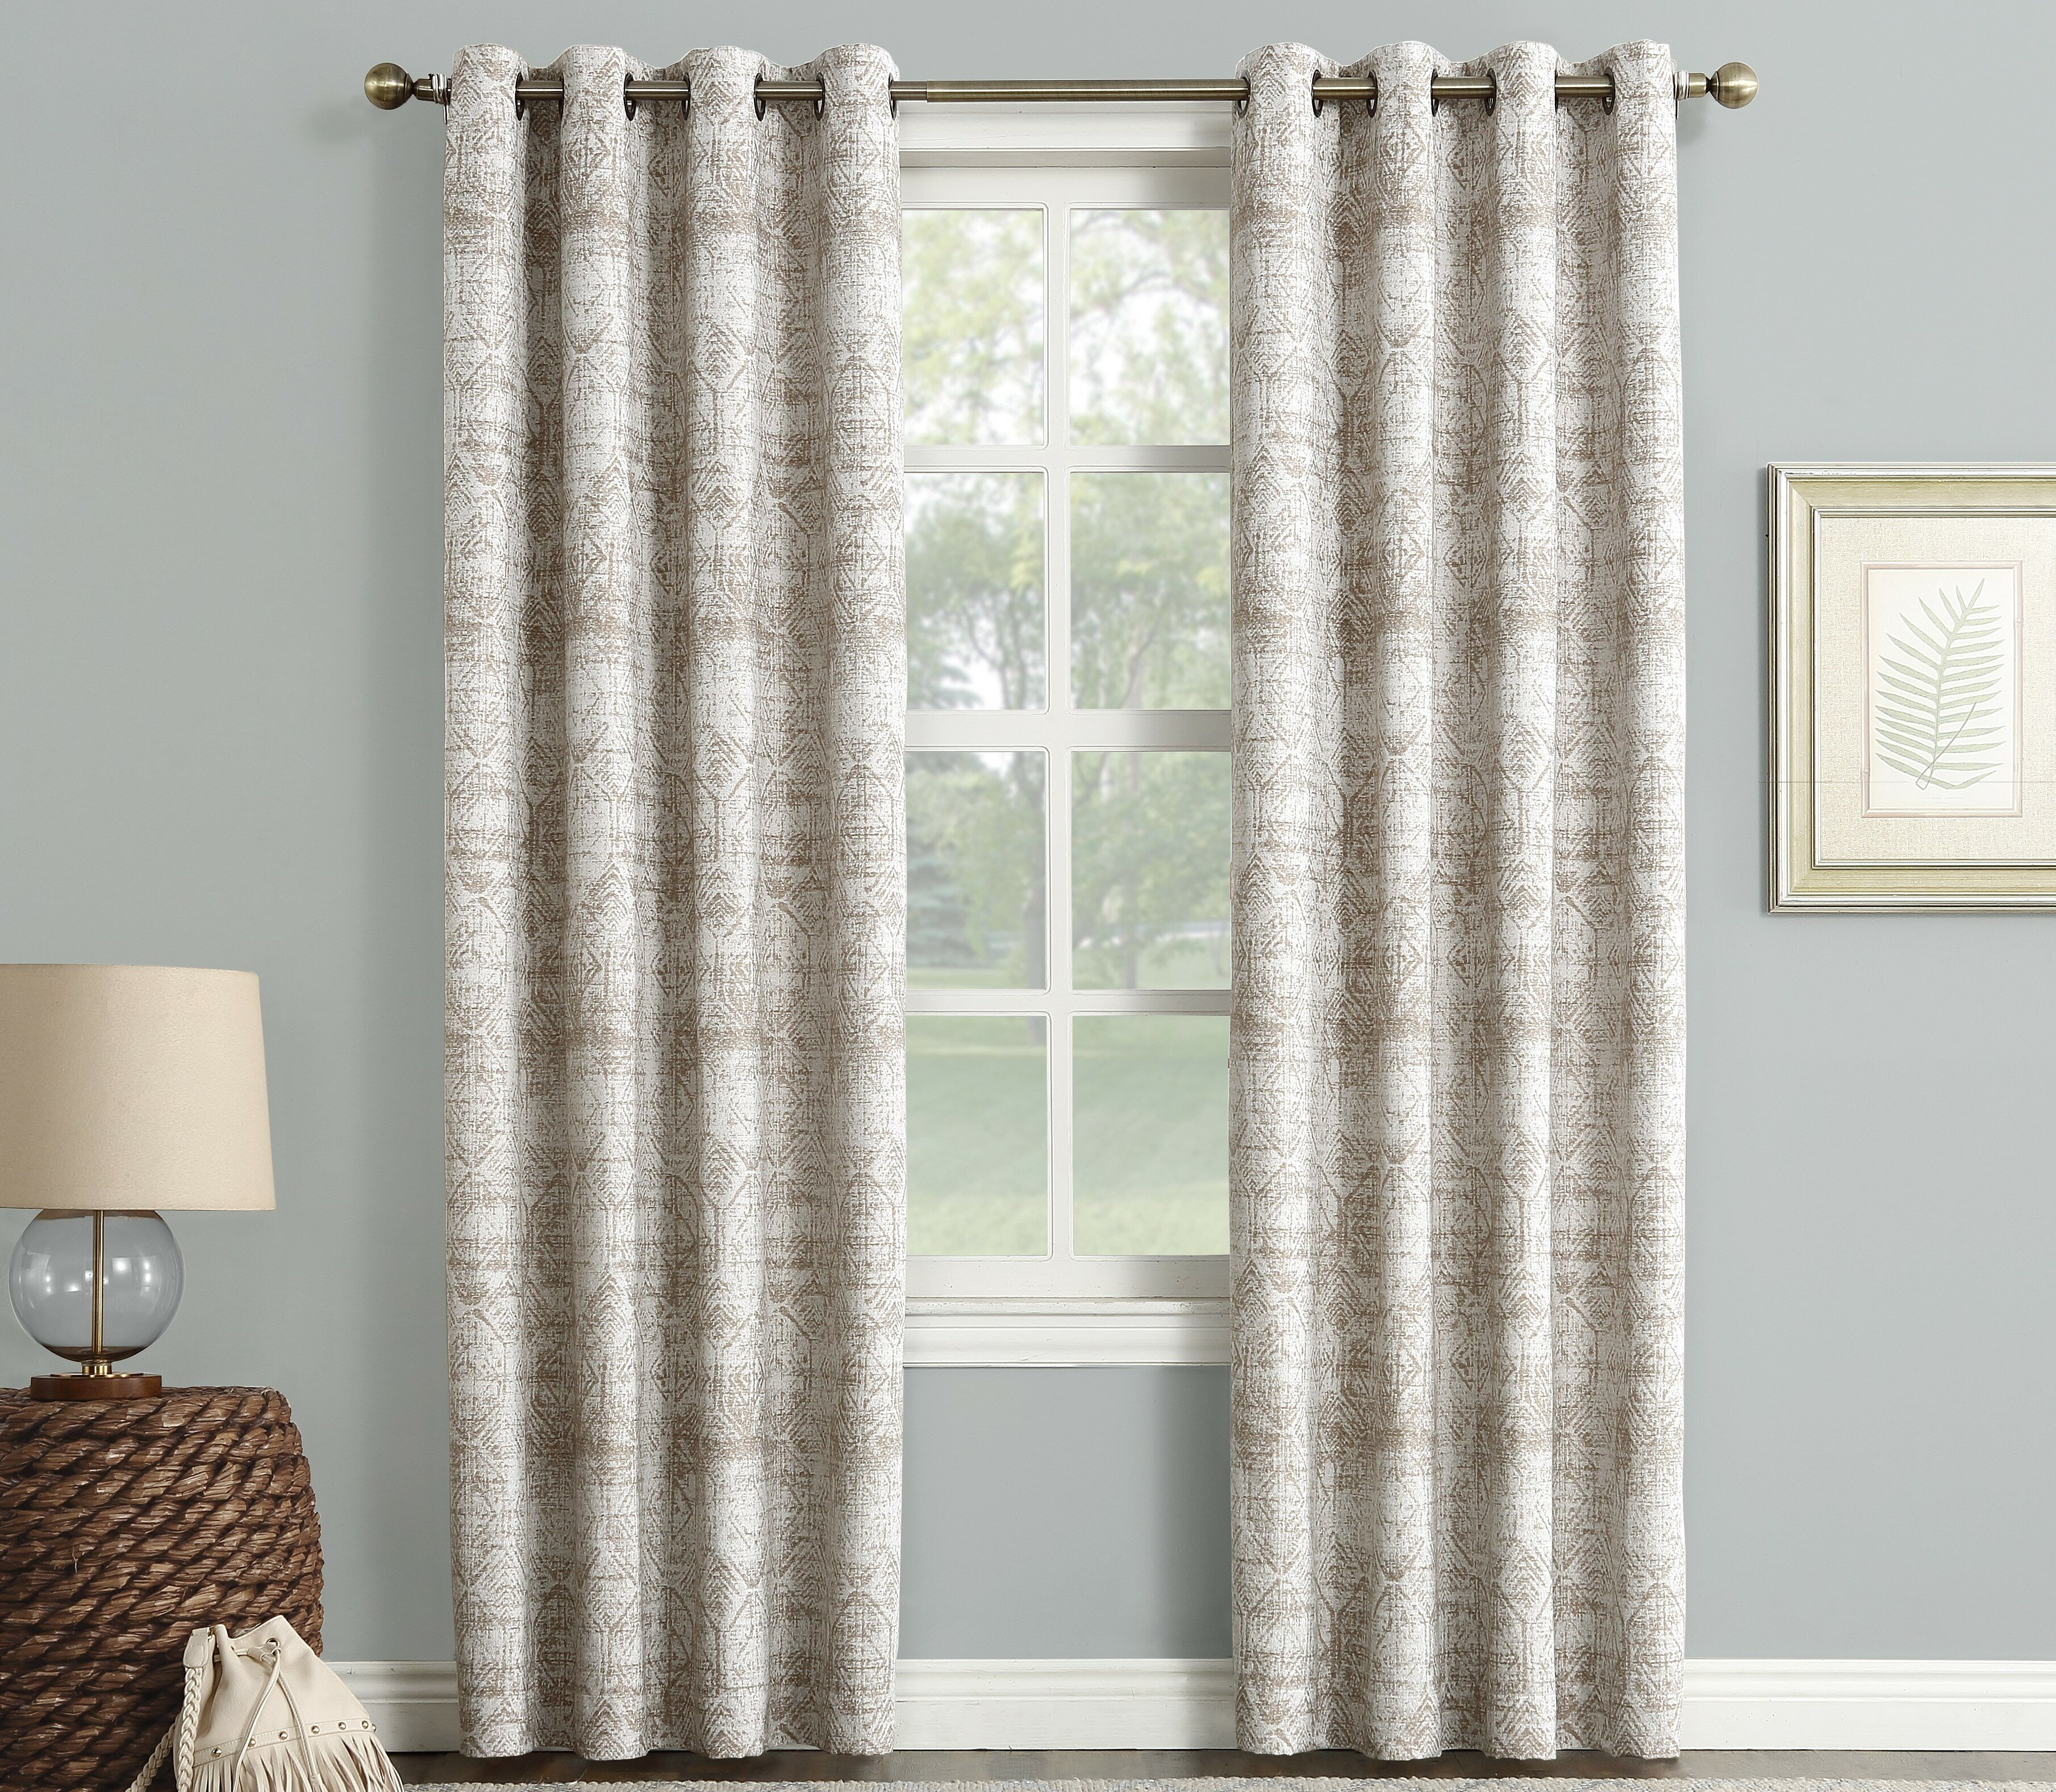 solid extreme grommet panel max theater curtains pdx solar sun curtain reviews thermal window zero wayfair baxter treatments single home grade blackout